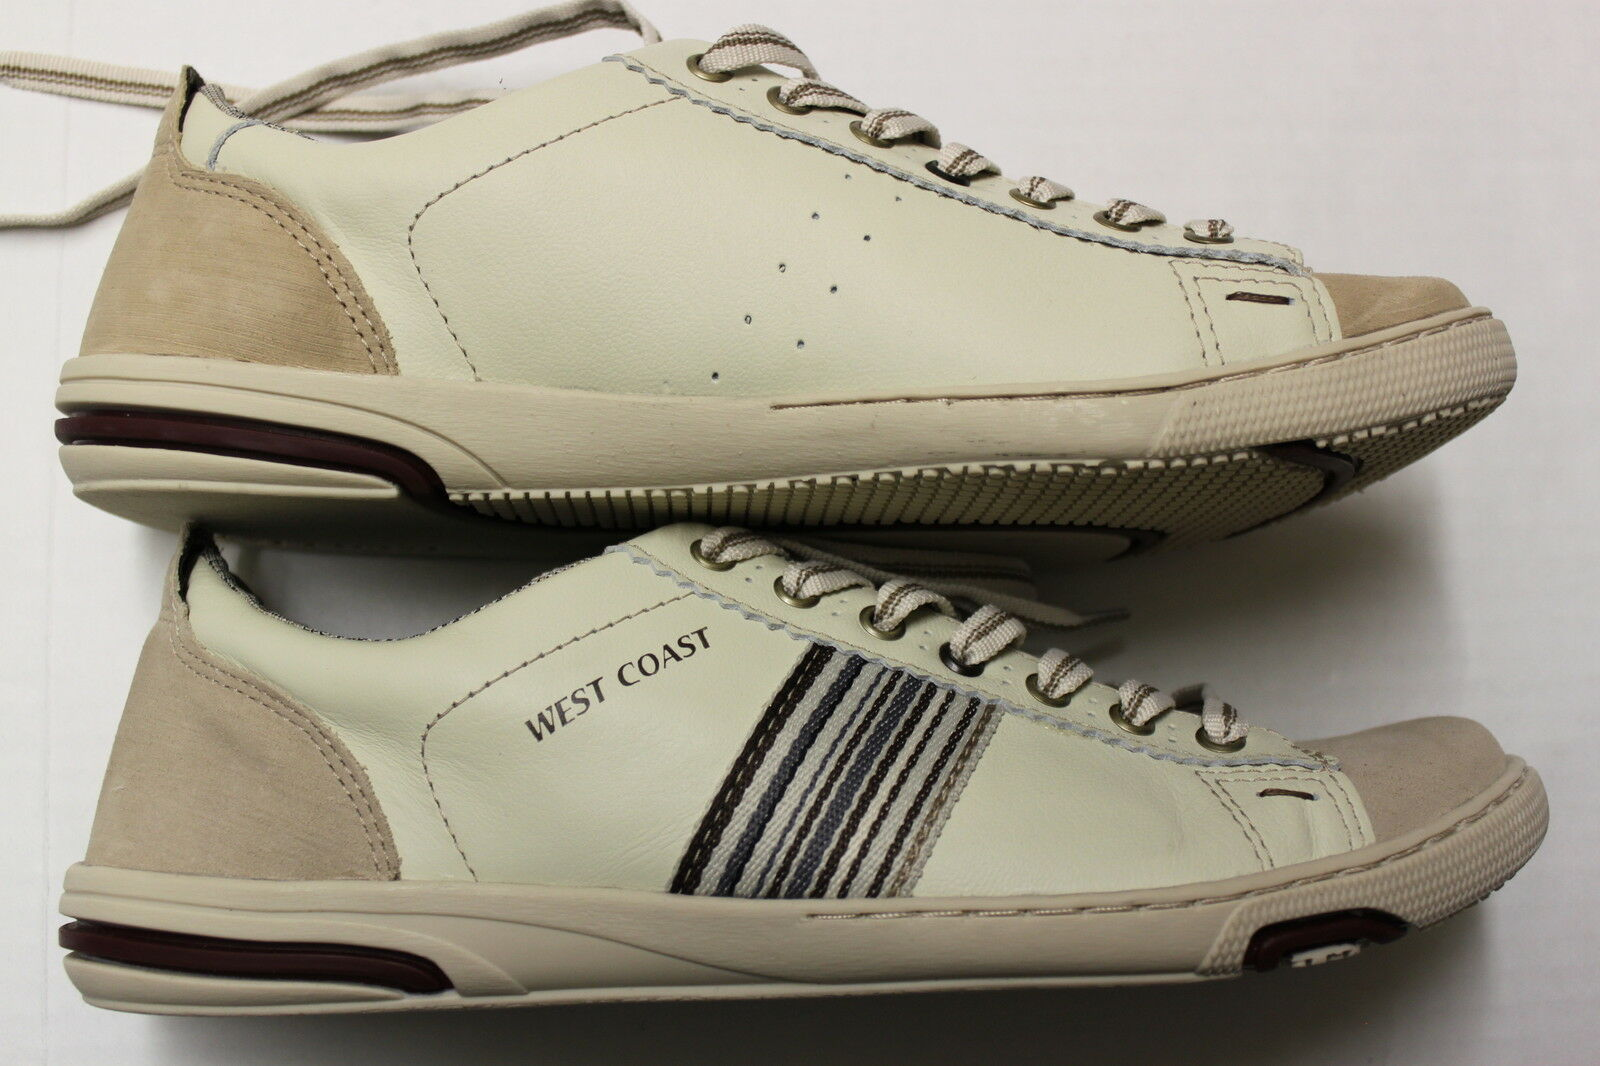 WEST COAST RARE Mens 2-TONE LIGHT BROWN STRIPED SNEAKERS WALKING SHOES NEW  11.5